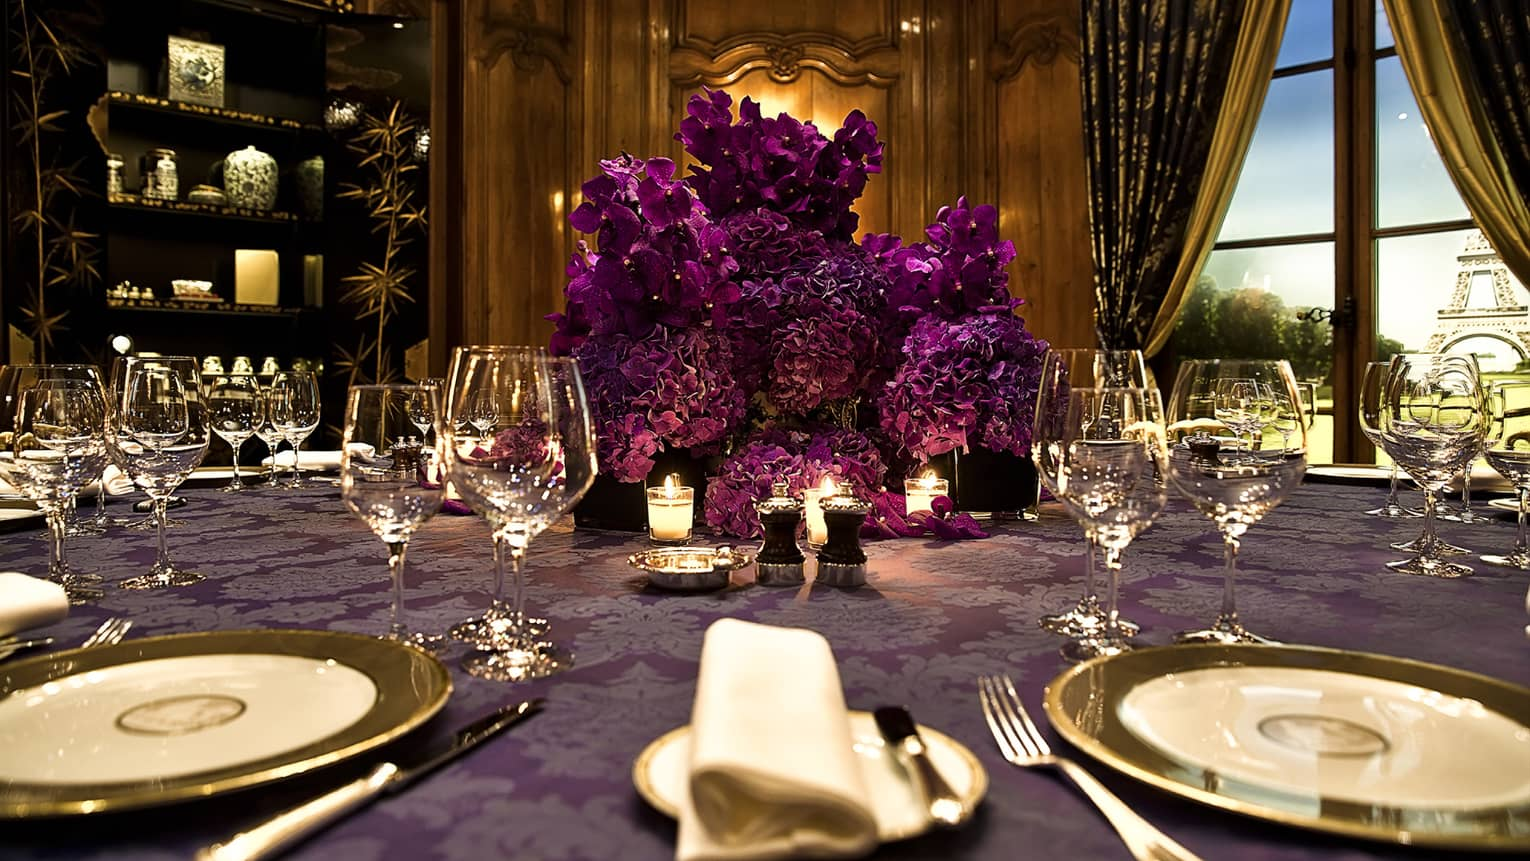 Close-up of purple flowers, table linens, gold rimmed dishes in Salon Regence